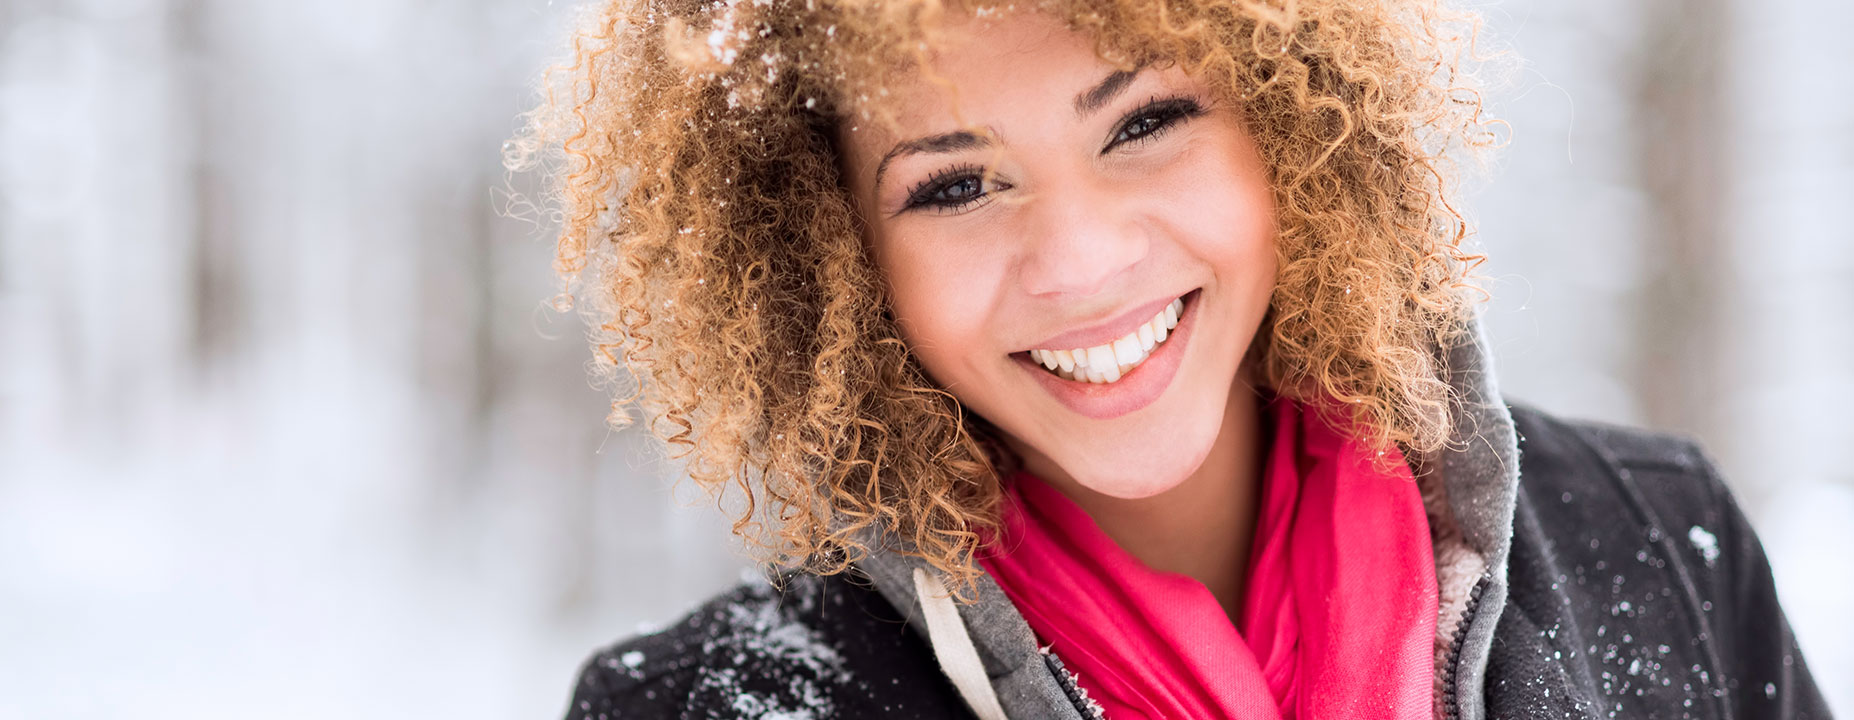 Smiling young lady